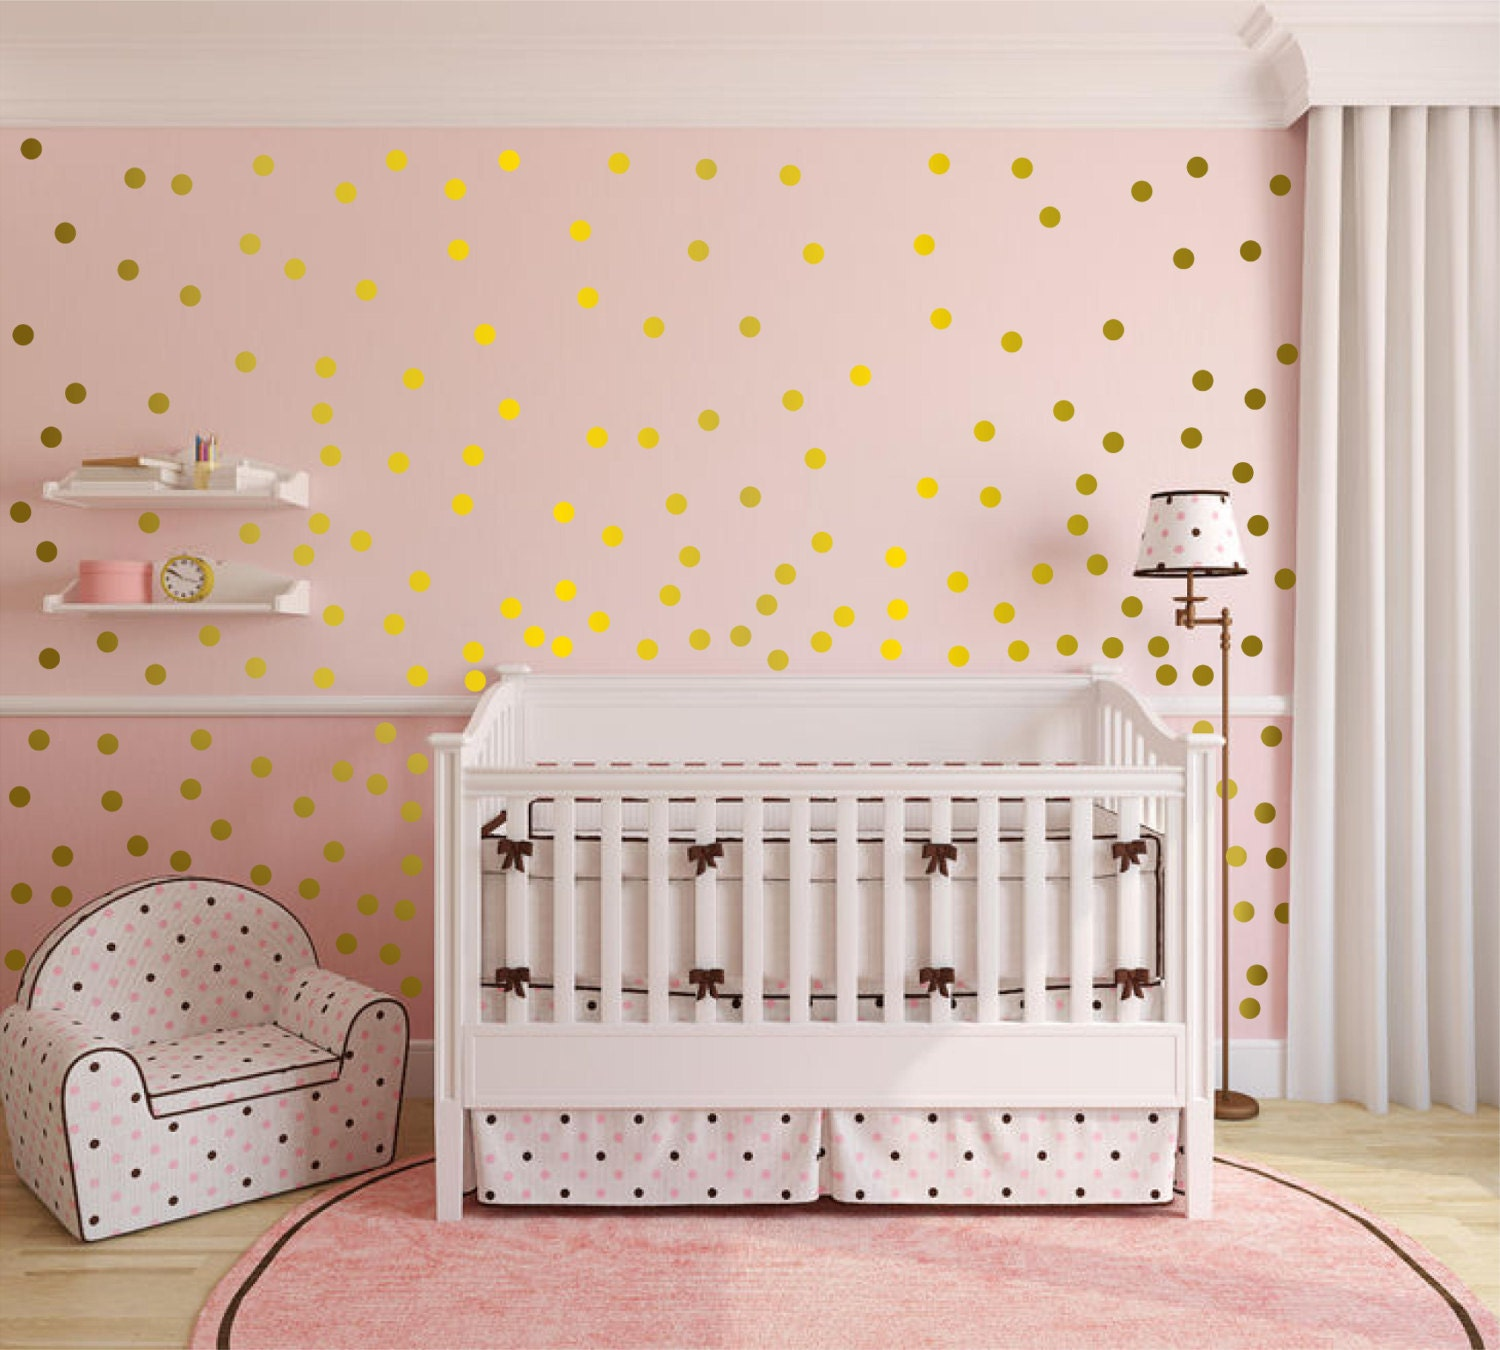 Metallic gold wall decals polka dots wall decor 1 inch for How to make polka dots on wall